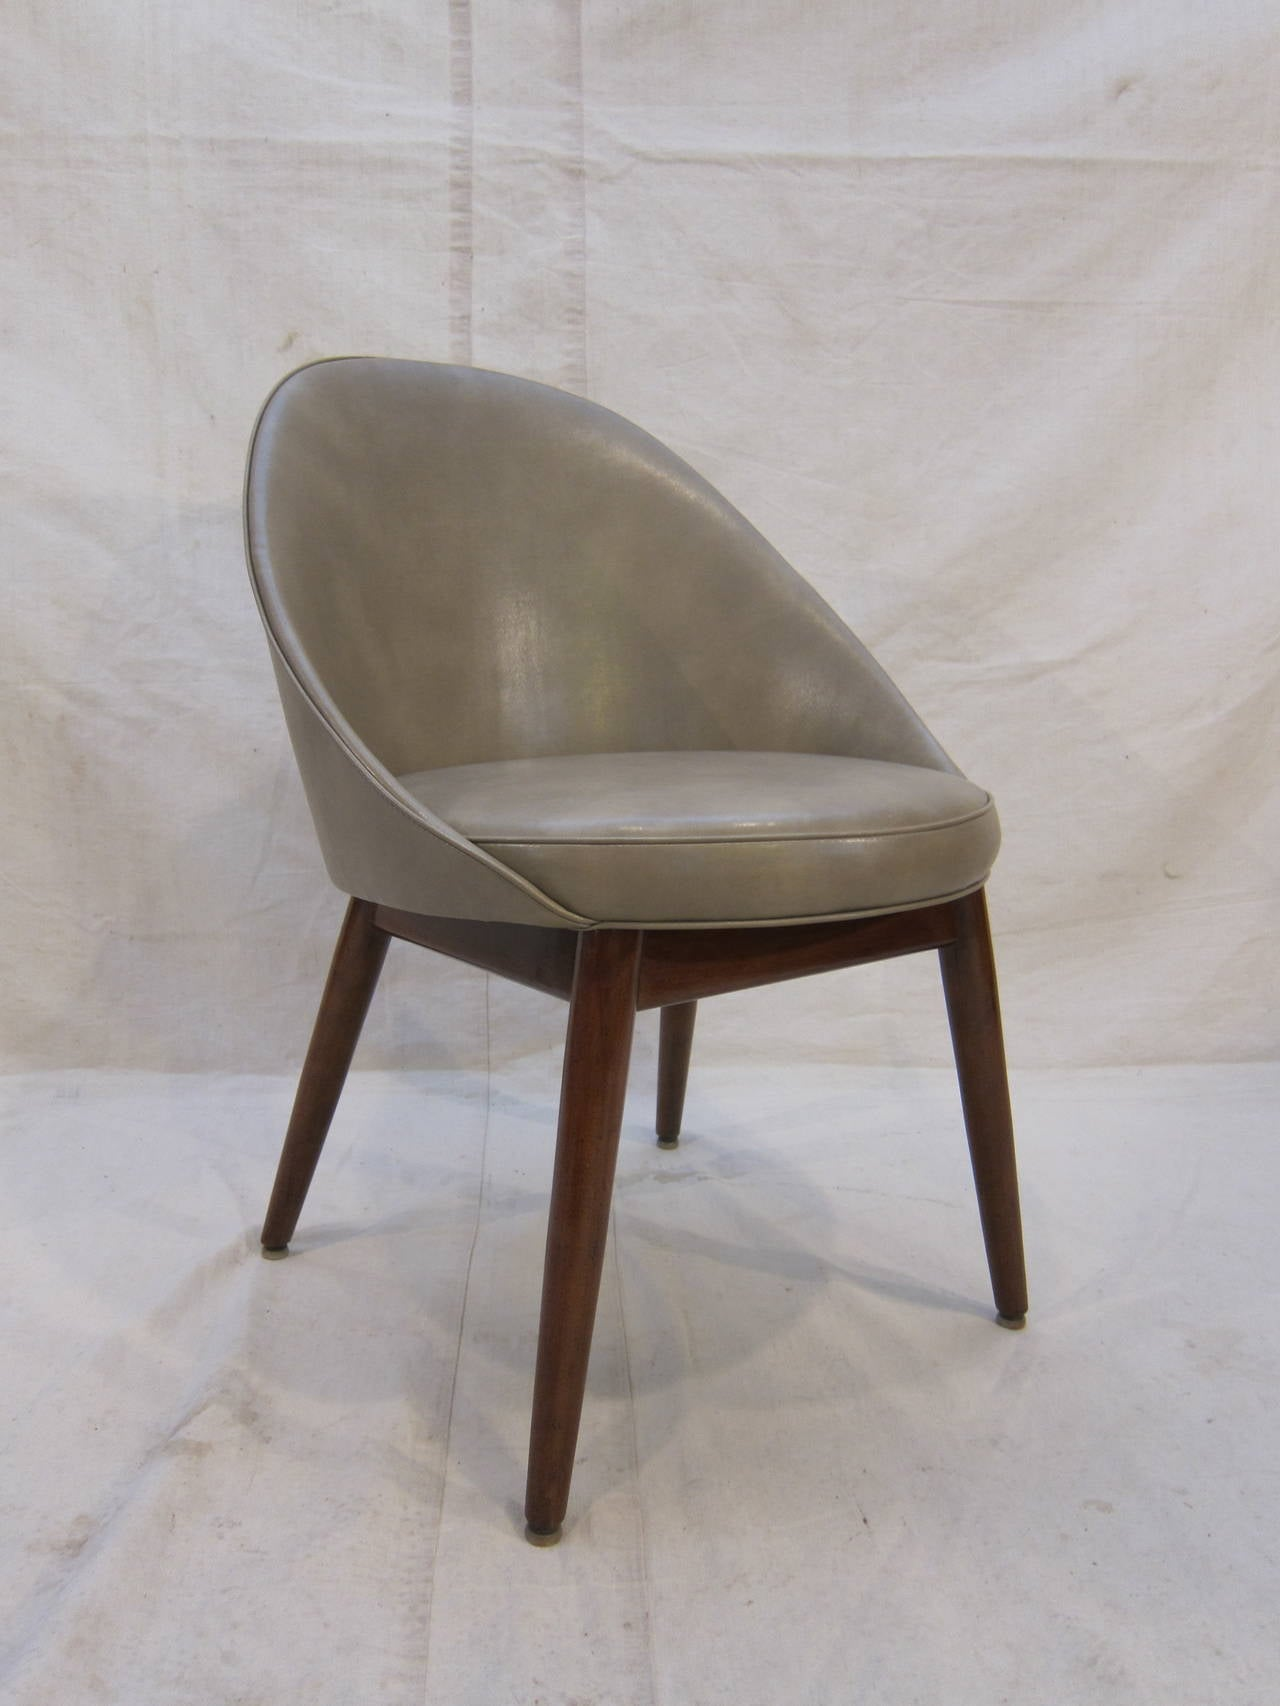 Pair of Danish Chairs Attributed to Ejvind Johansson For Sale 1